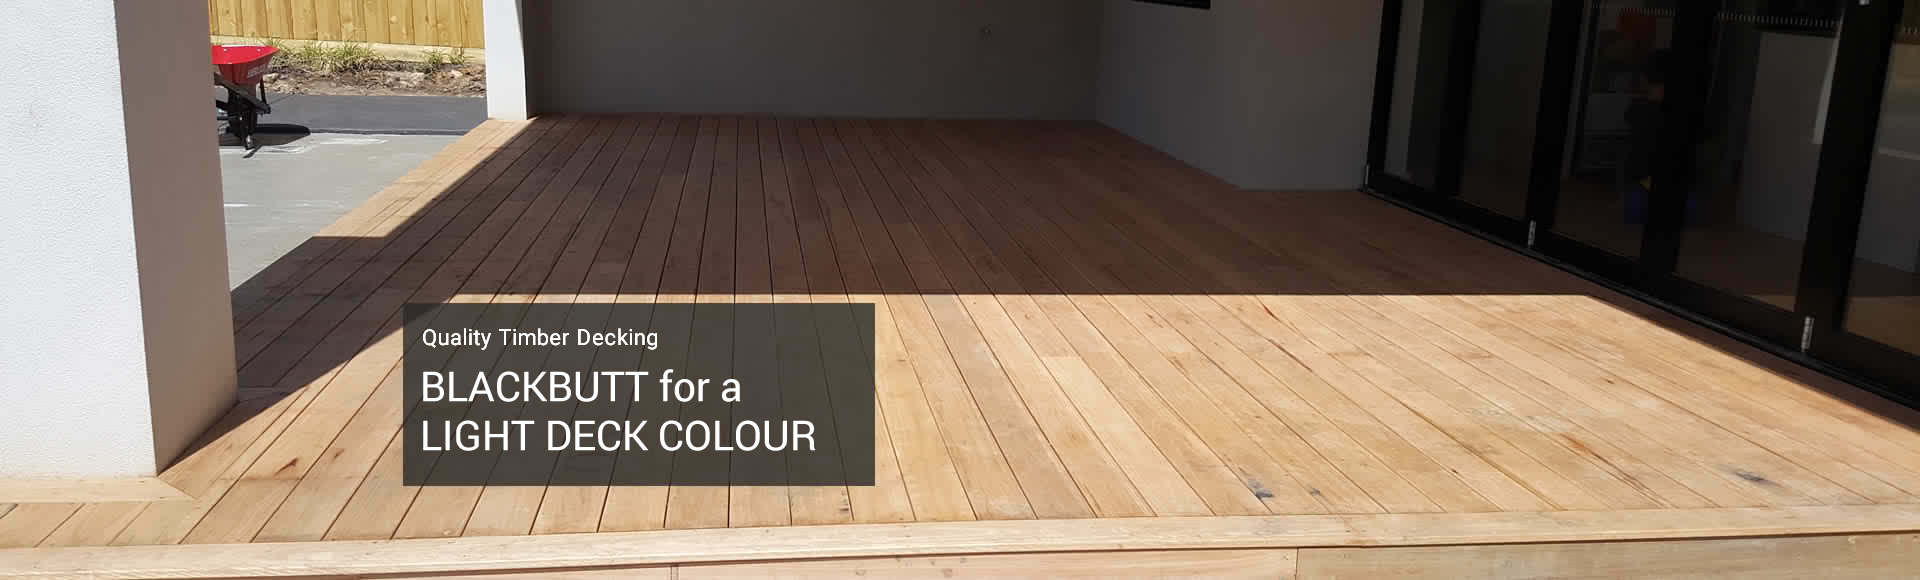 blackbutt for a light deck colour